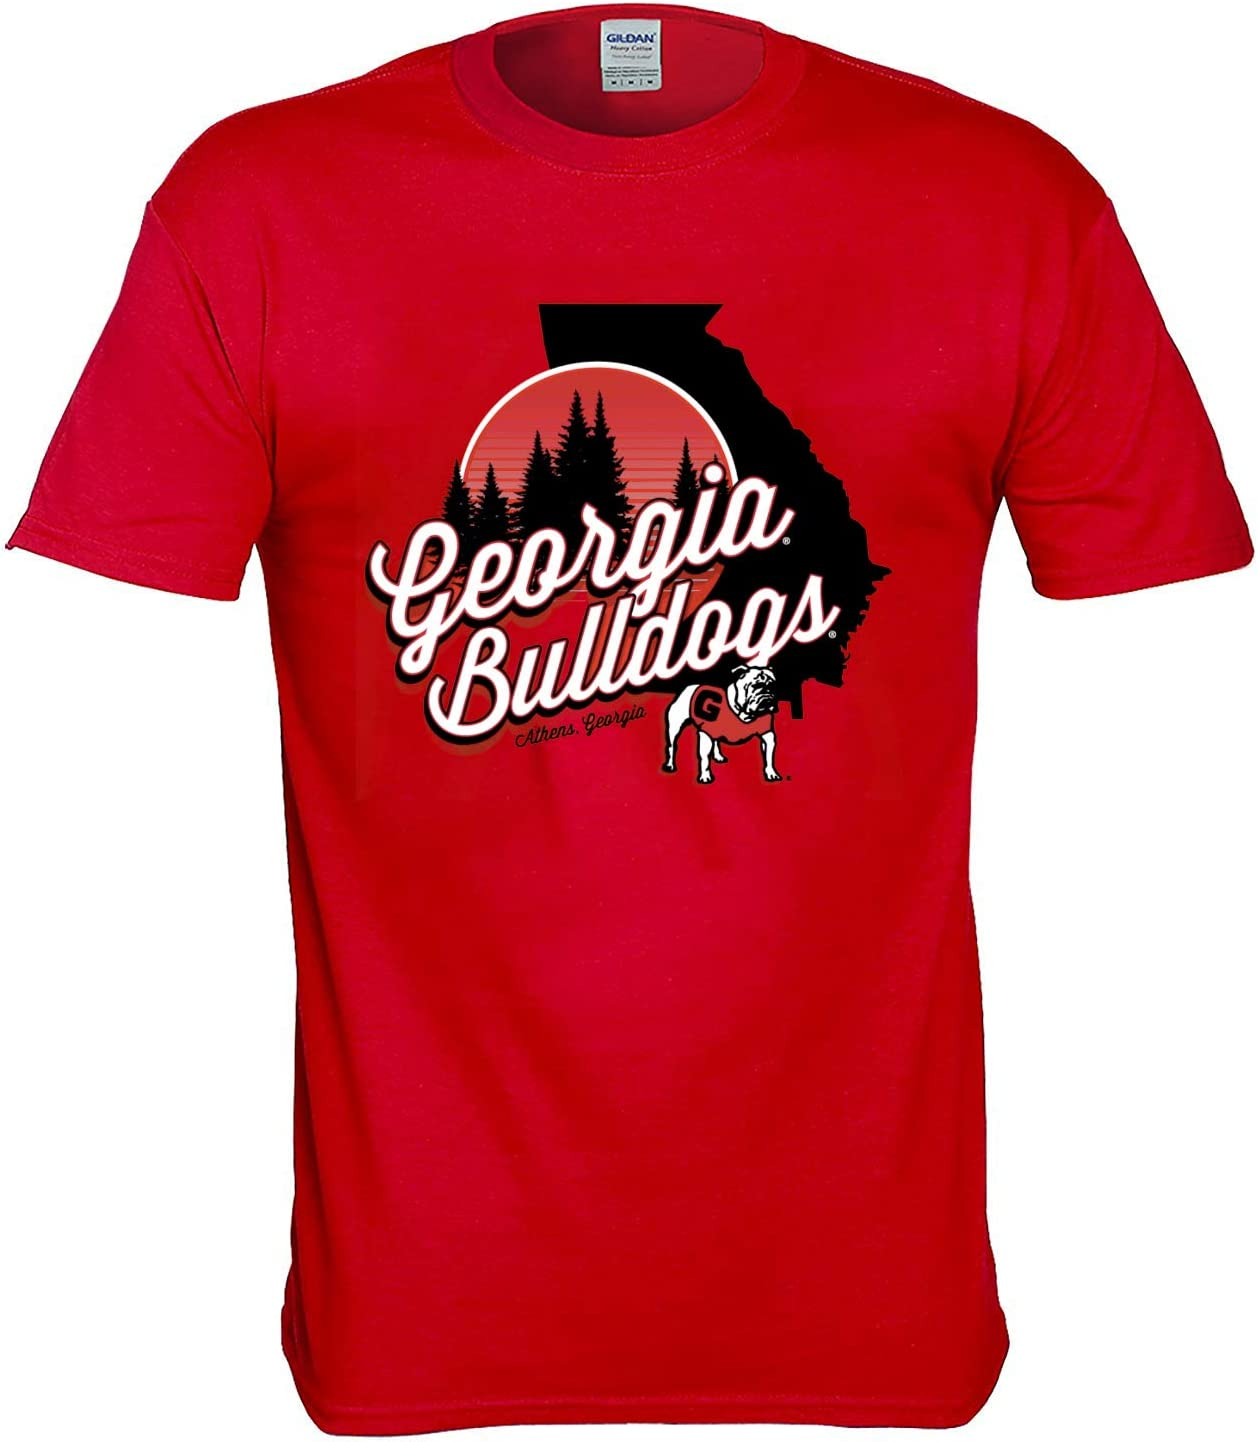 New World Graphics Georgia Bulldogs Shirt with State and Forest Design